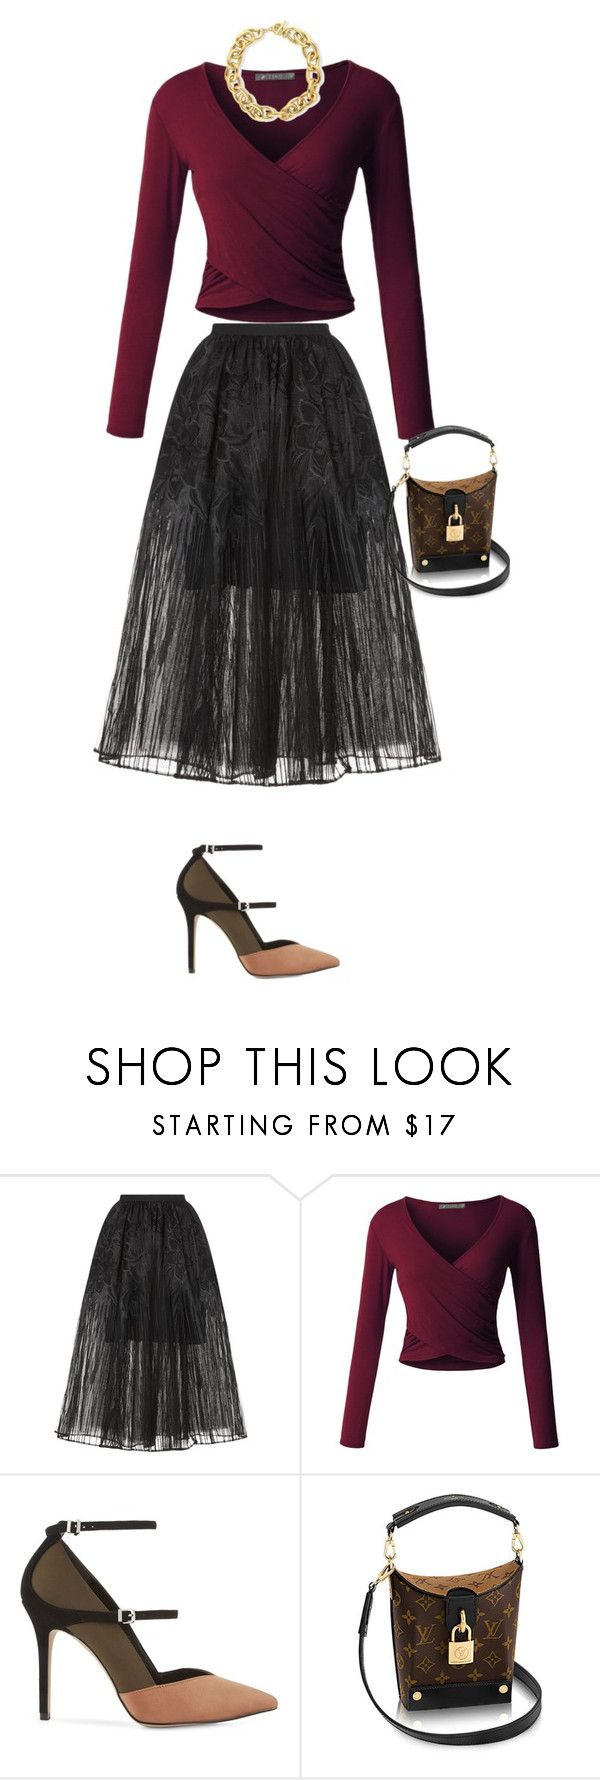 """""""Untitled #7"""" by kocze-eniko on Polyvore featuring Elie Saab, LE3NO, Reiss and BERRICLE"""